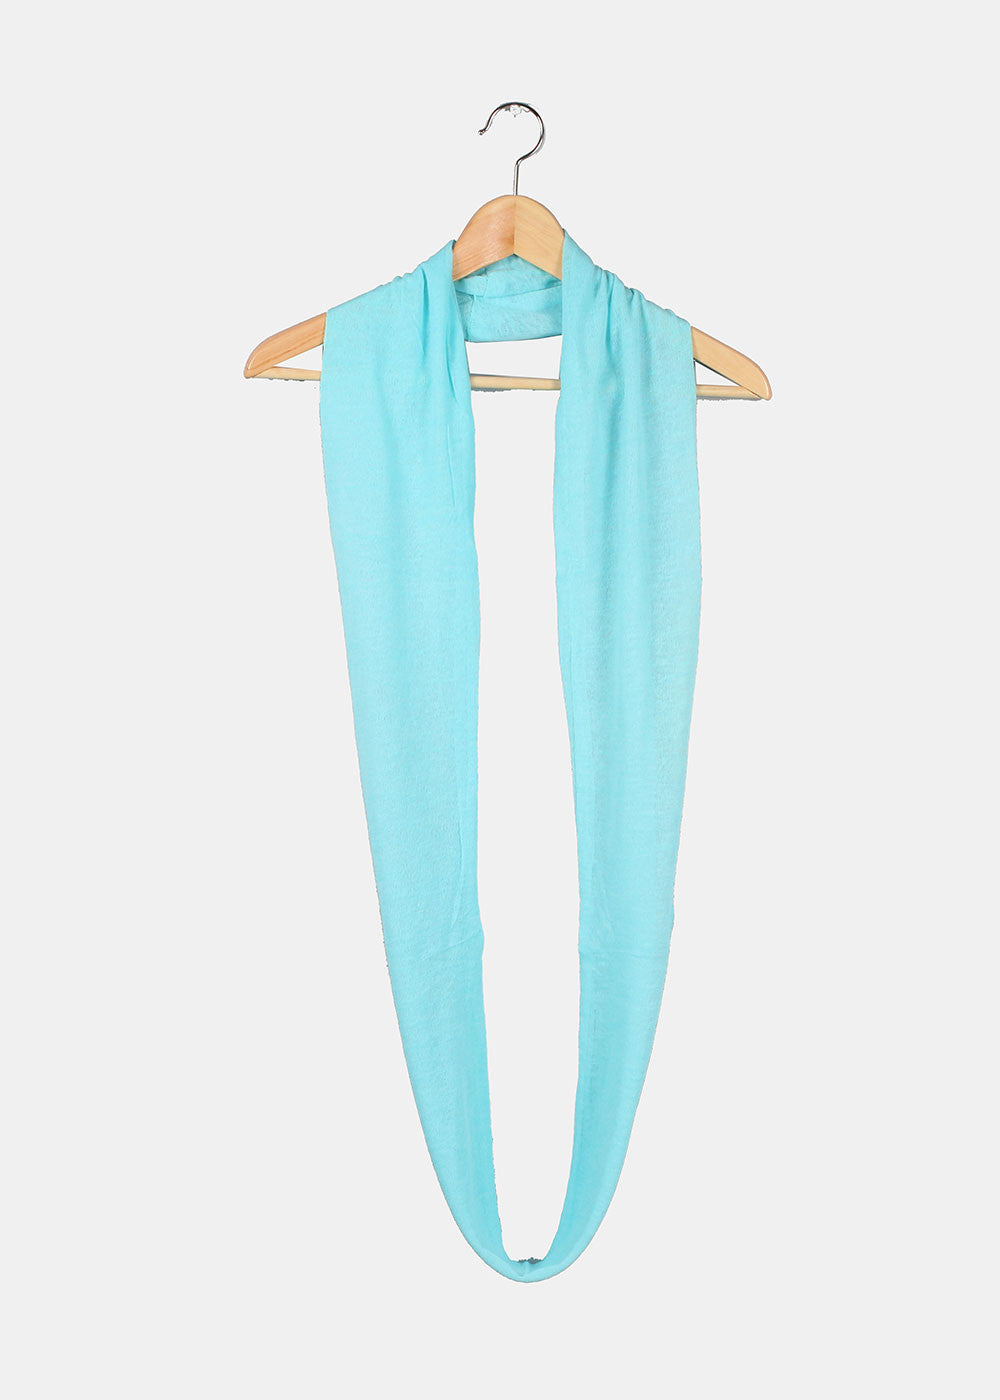 Lightweight Infinity Scarf - Light Blue